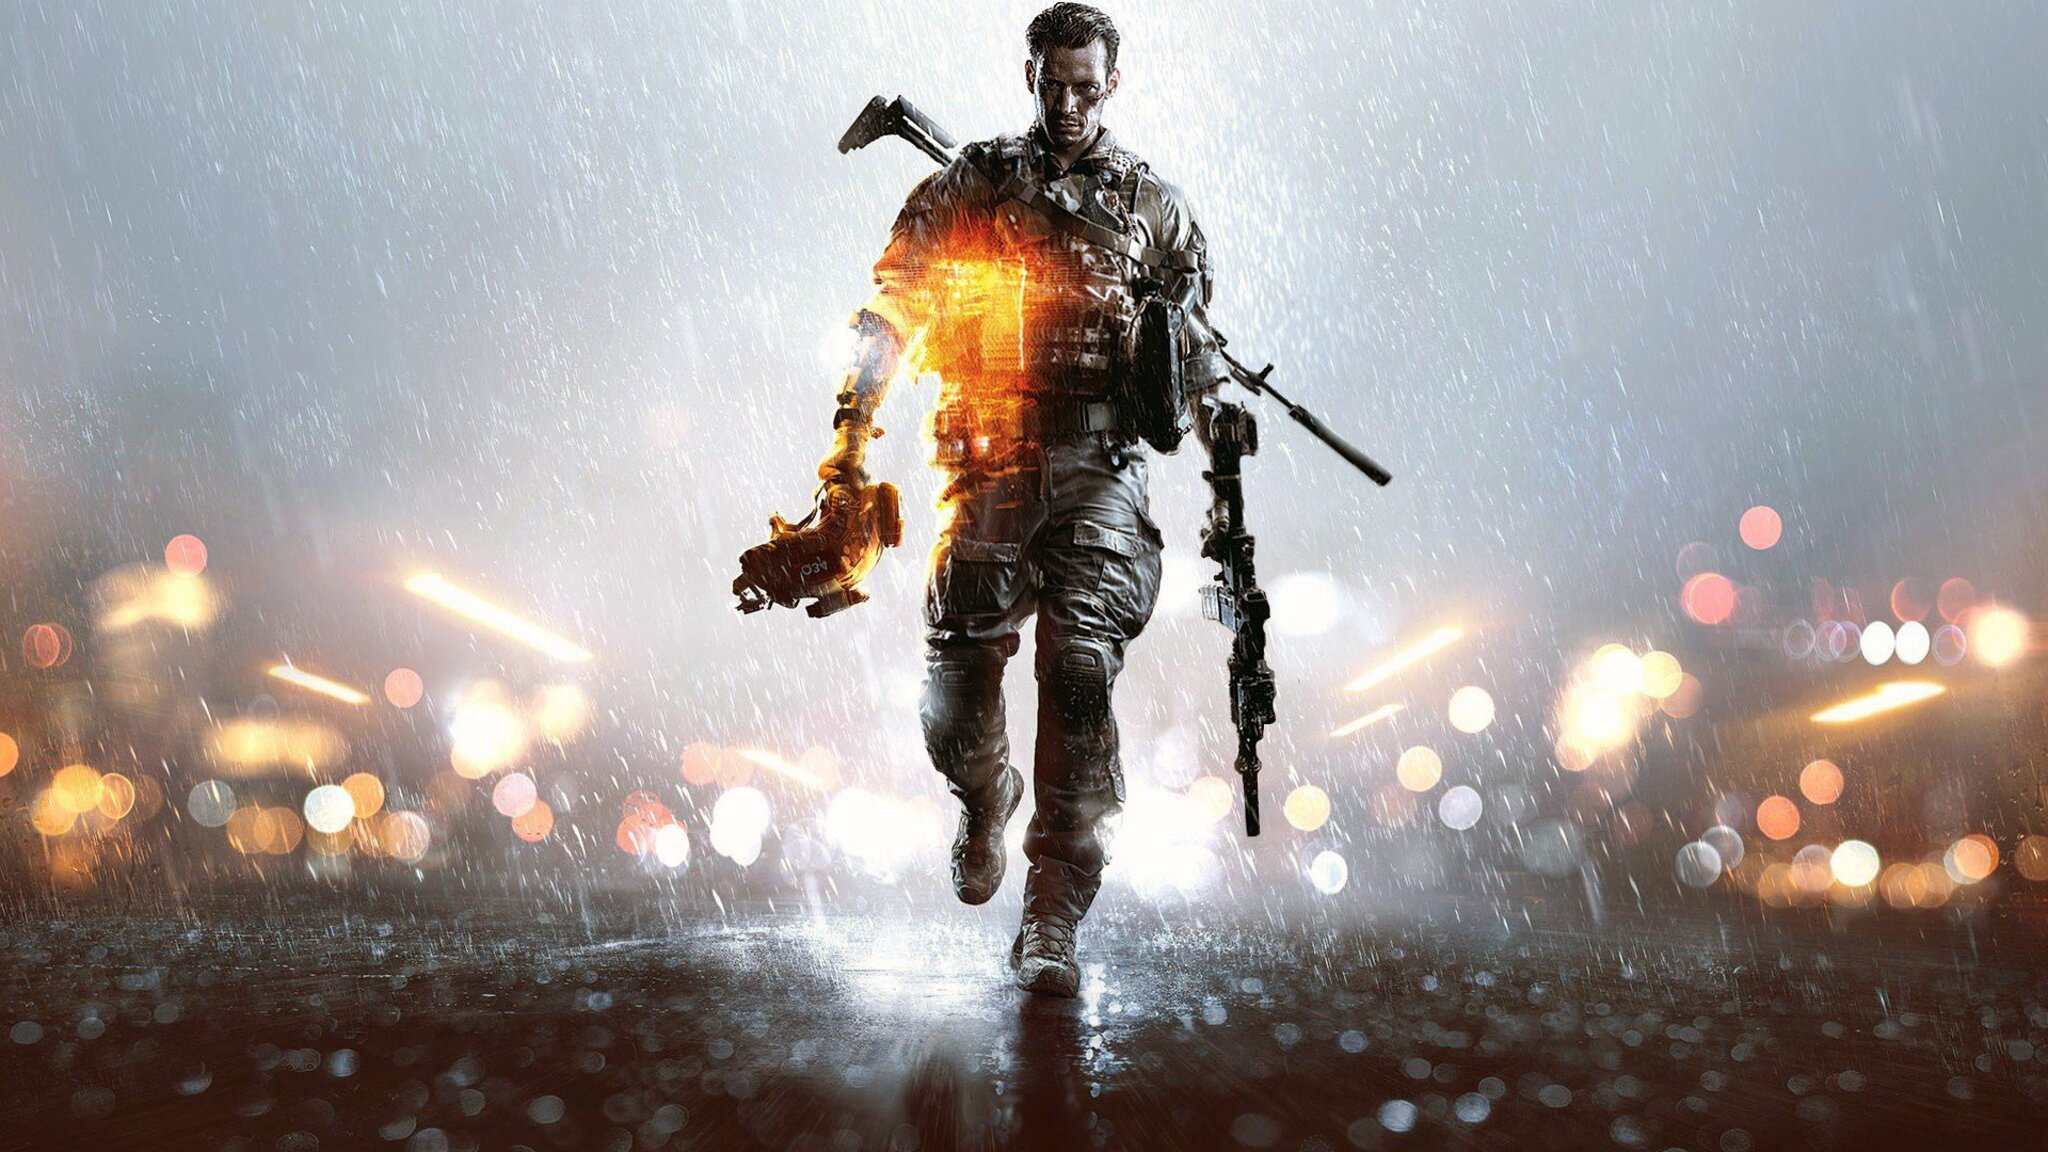 Download Wallpaper 1280x1280 Battlefield 4 Game Ea: 2048x1152 Battlefield 4 Game Wide 2048x1152 Resolution HD